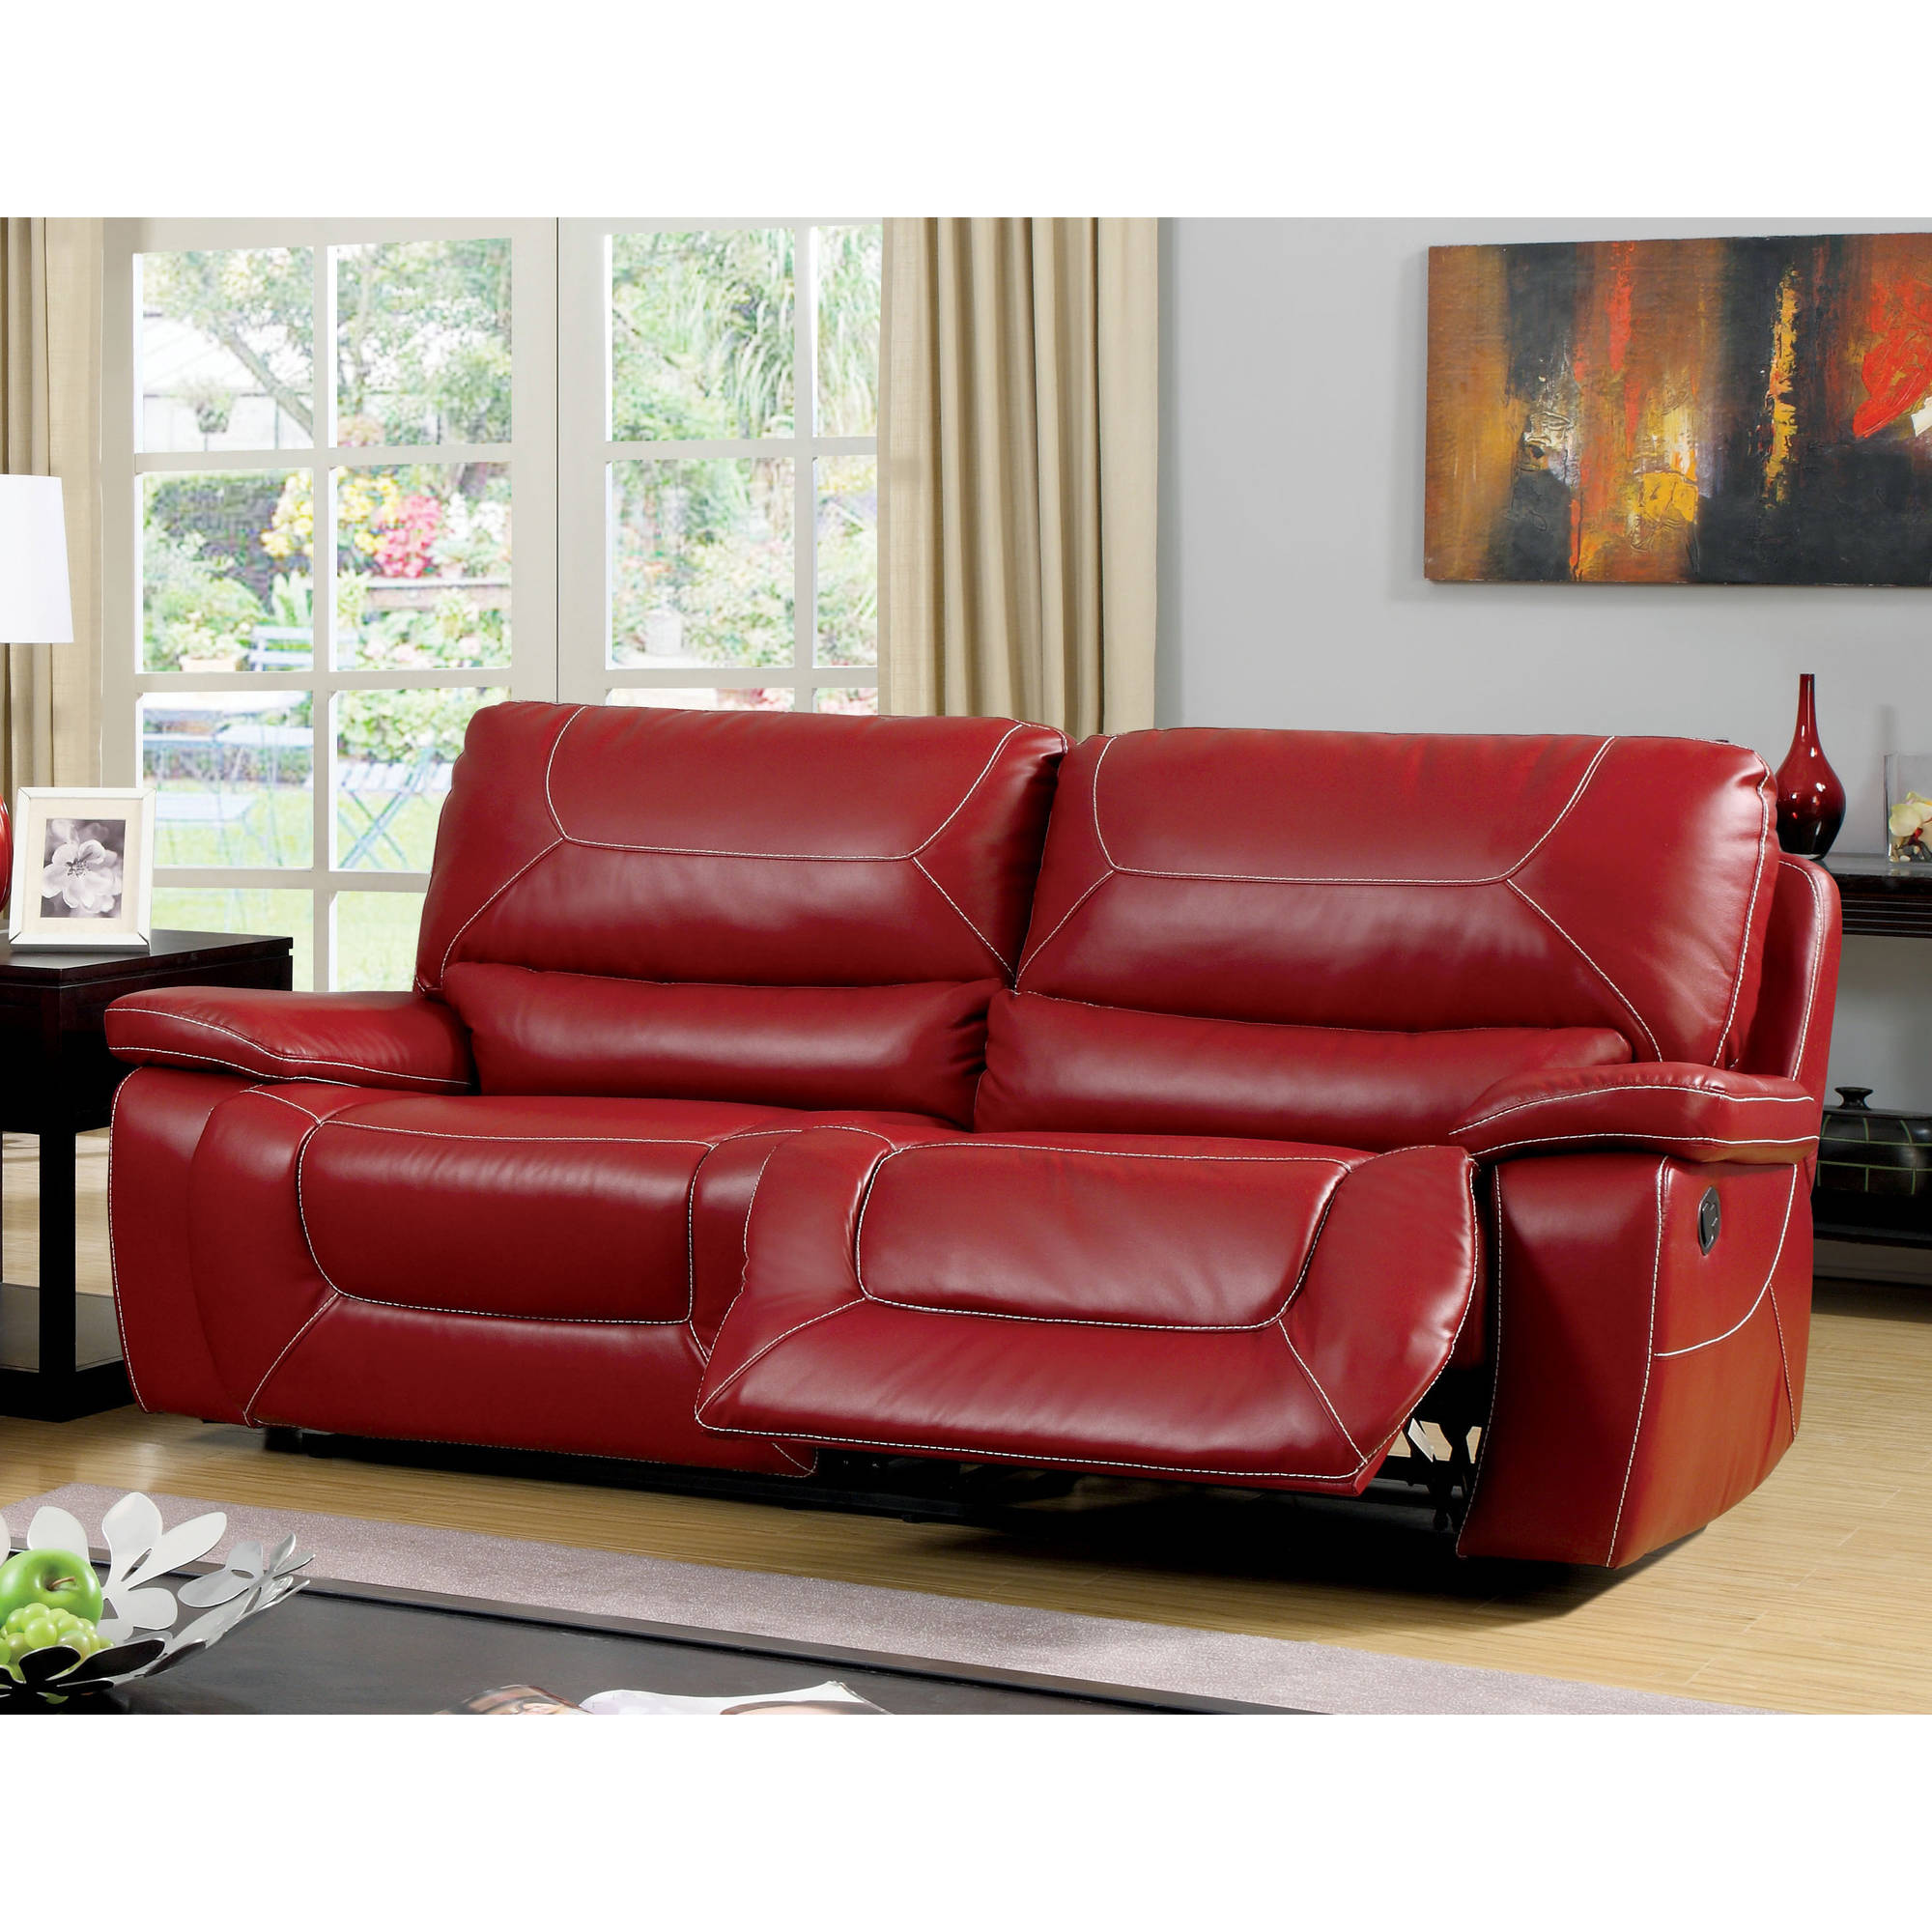 Furniture of America Baxter Contemporary Reclining Sofa, Red